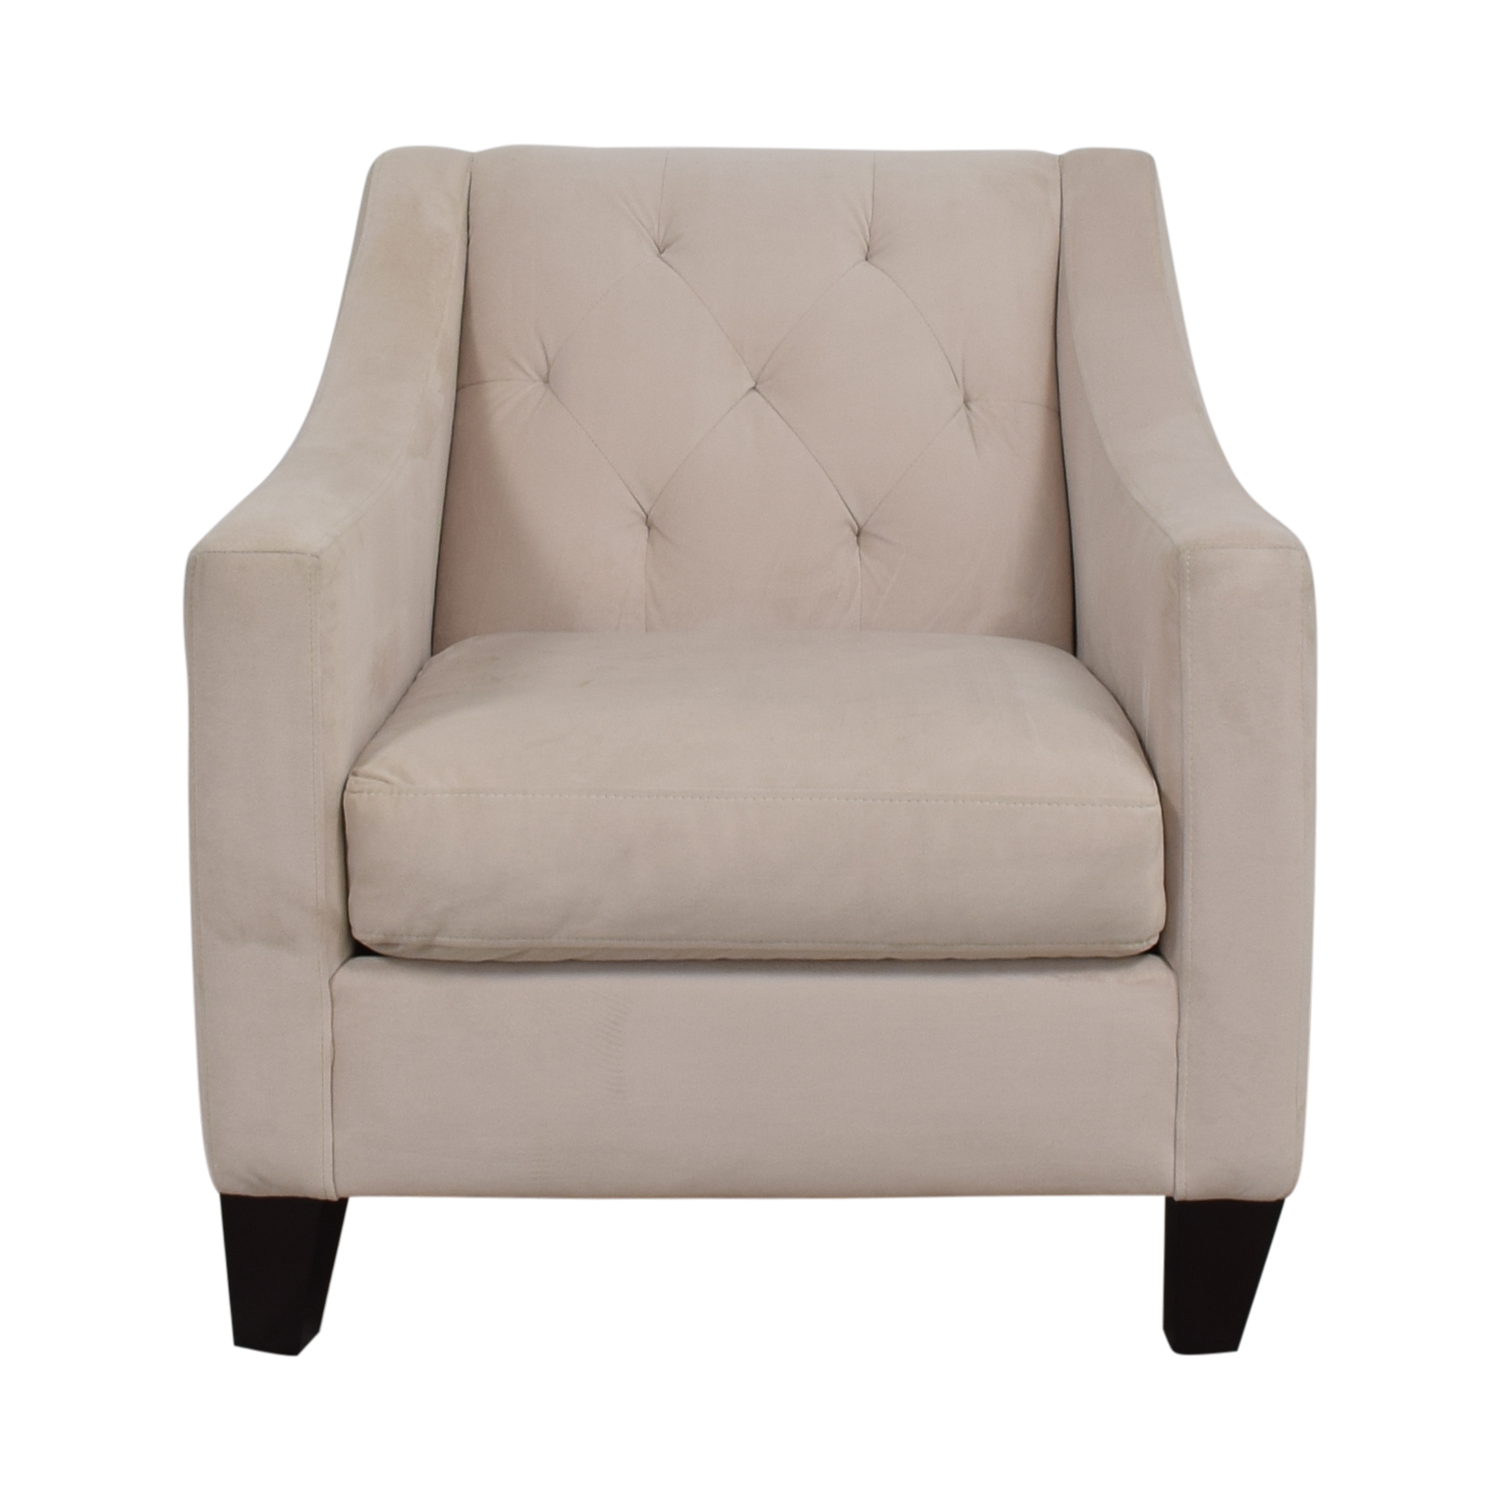 shop Max Home Tufted Cream Velvet Arm Chair Max Home Chairs